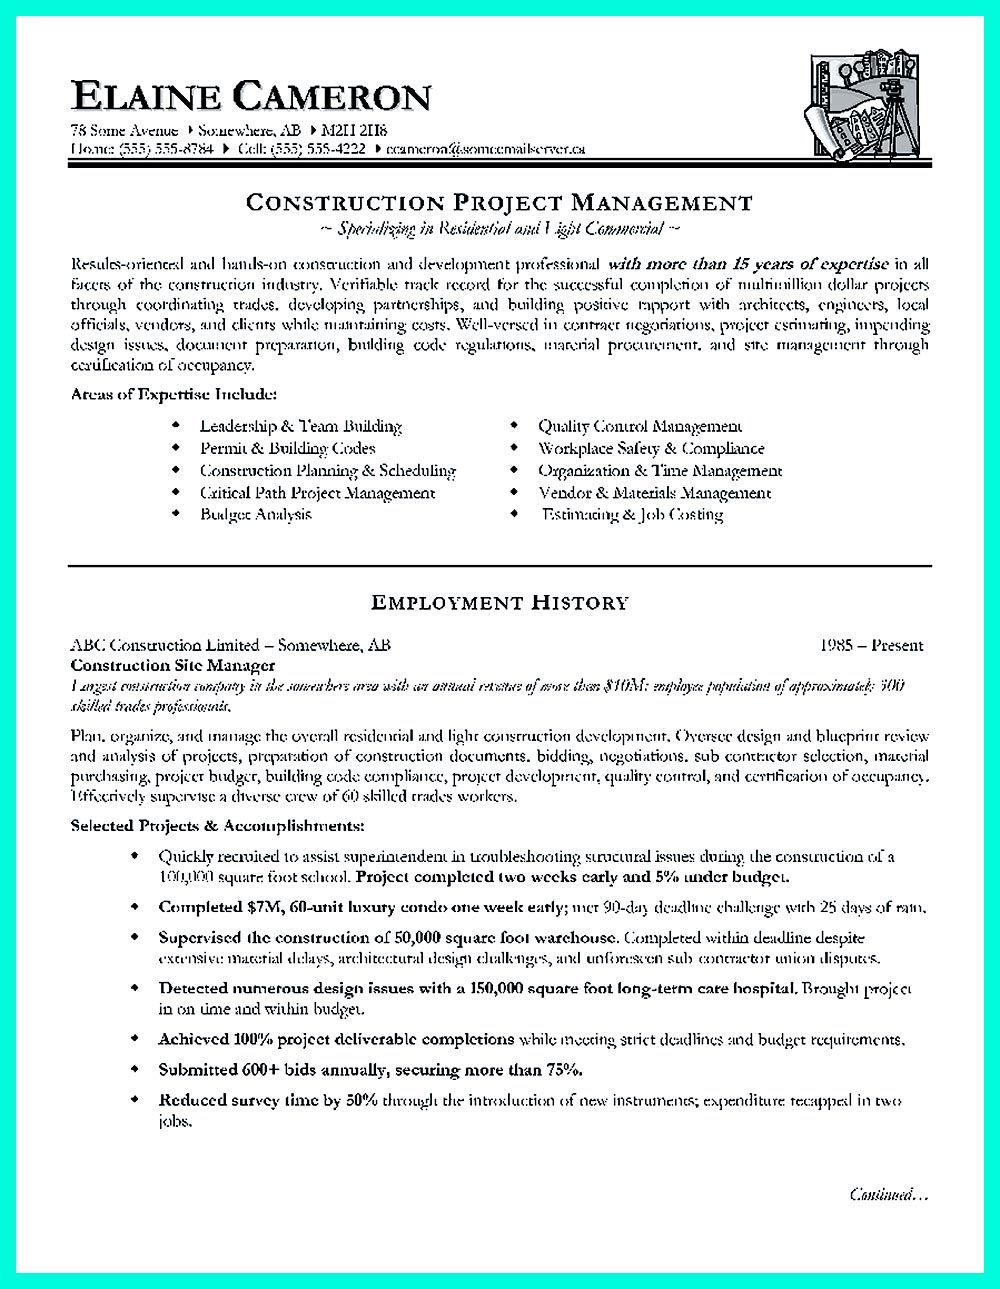 Construction project manager resume for experienced one must be made ...